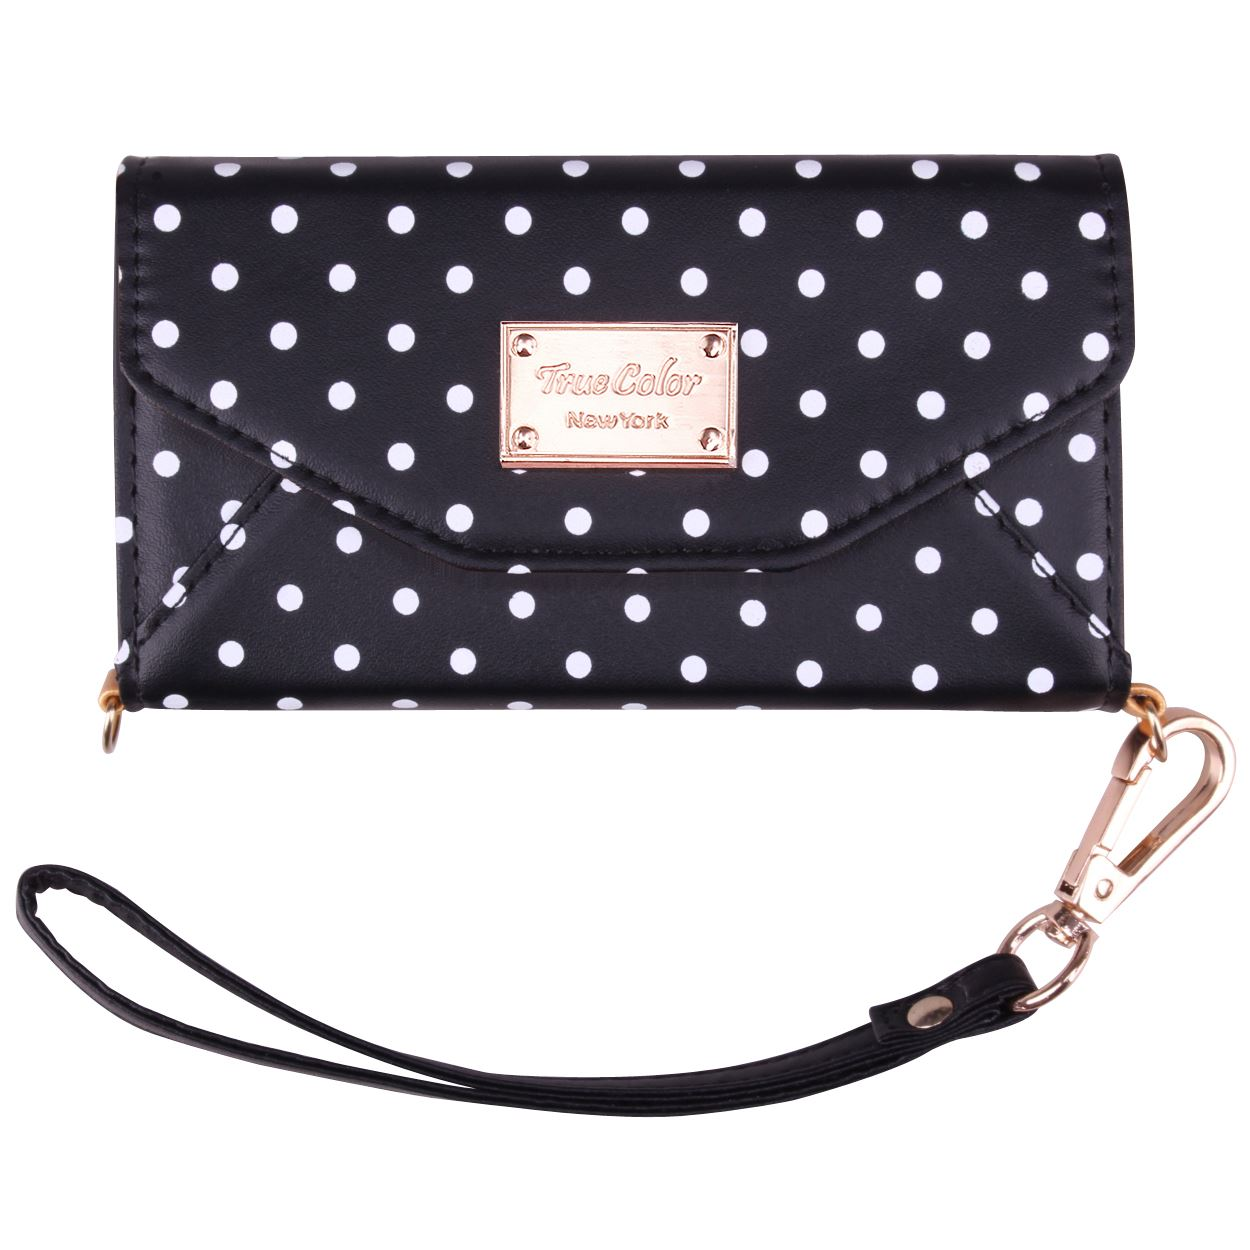 "iPhone 6 Plus, iPhone 6s Plus 5.5"" Wallet Case, True Color Premium Leatherette Polka Dots Wristlet Clutch Folio Tri-Fold Wallet Purse Case Cover with Removable Wrist Strap - Black"